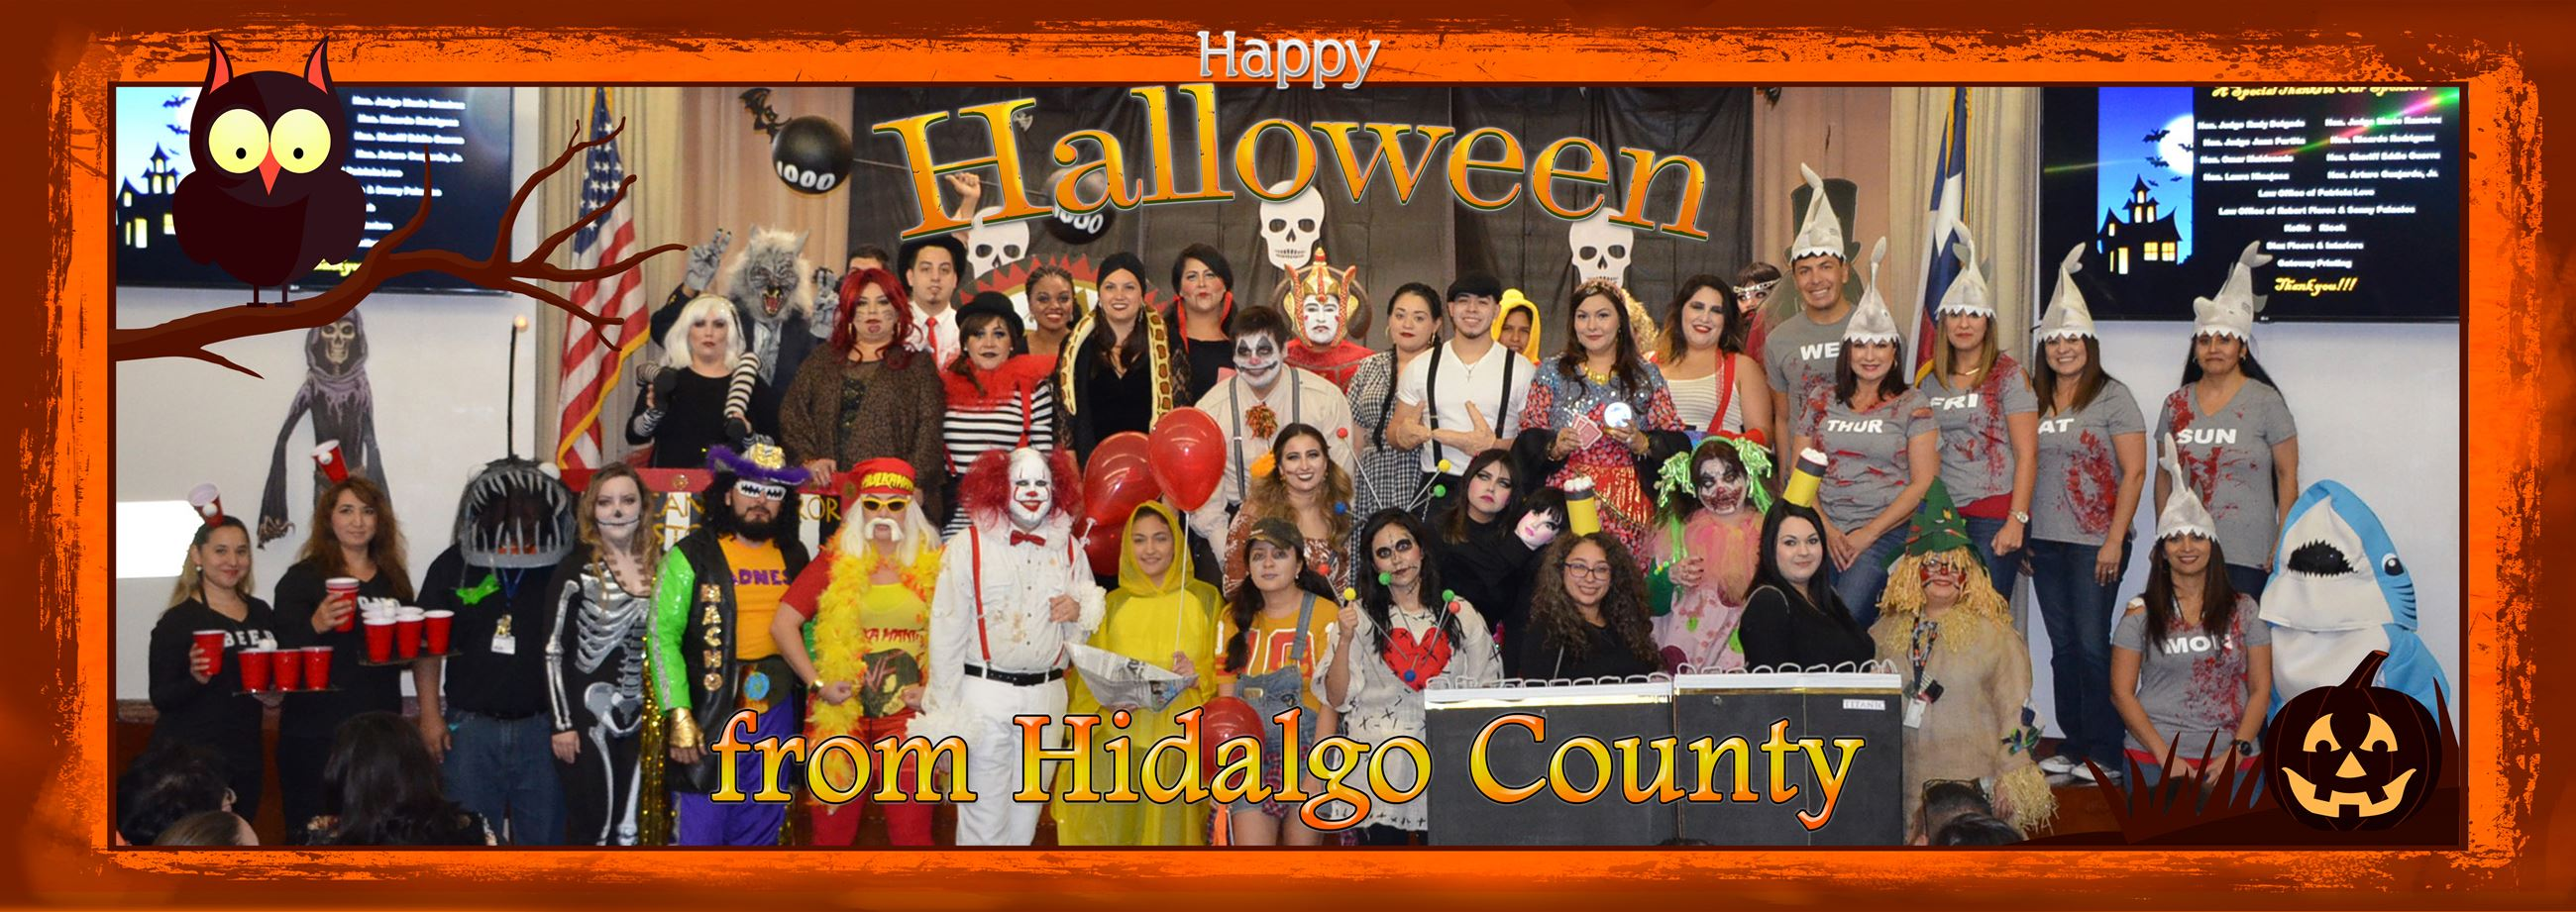 Halloween FB Cover photo